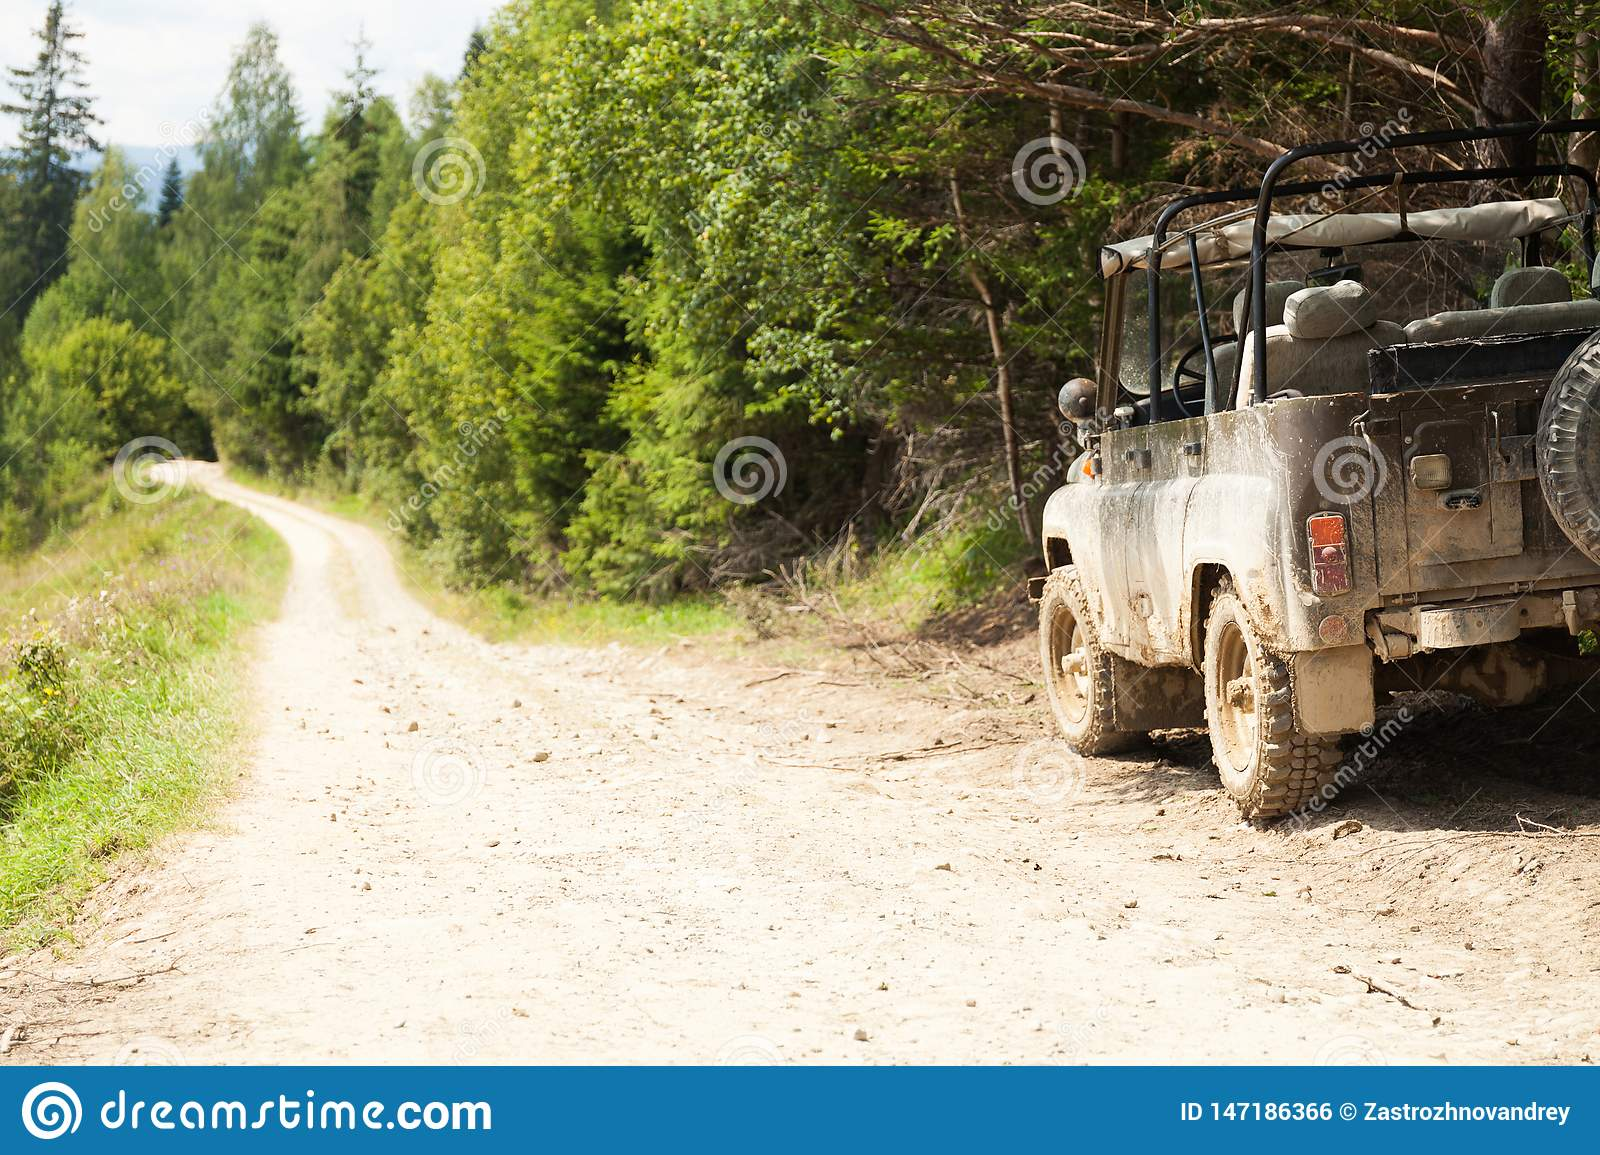 Off road 4x4 adventure, jeep on mountain dirt road. Copy space for text